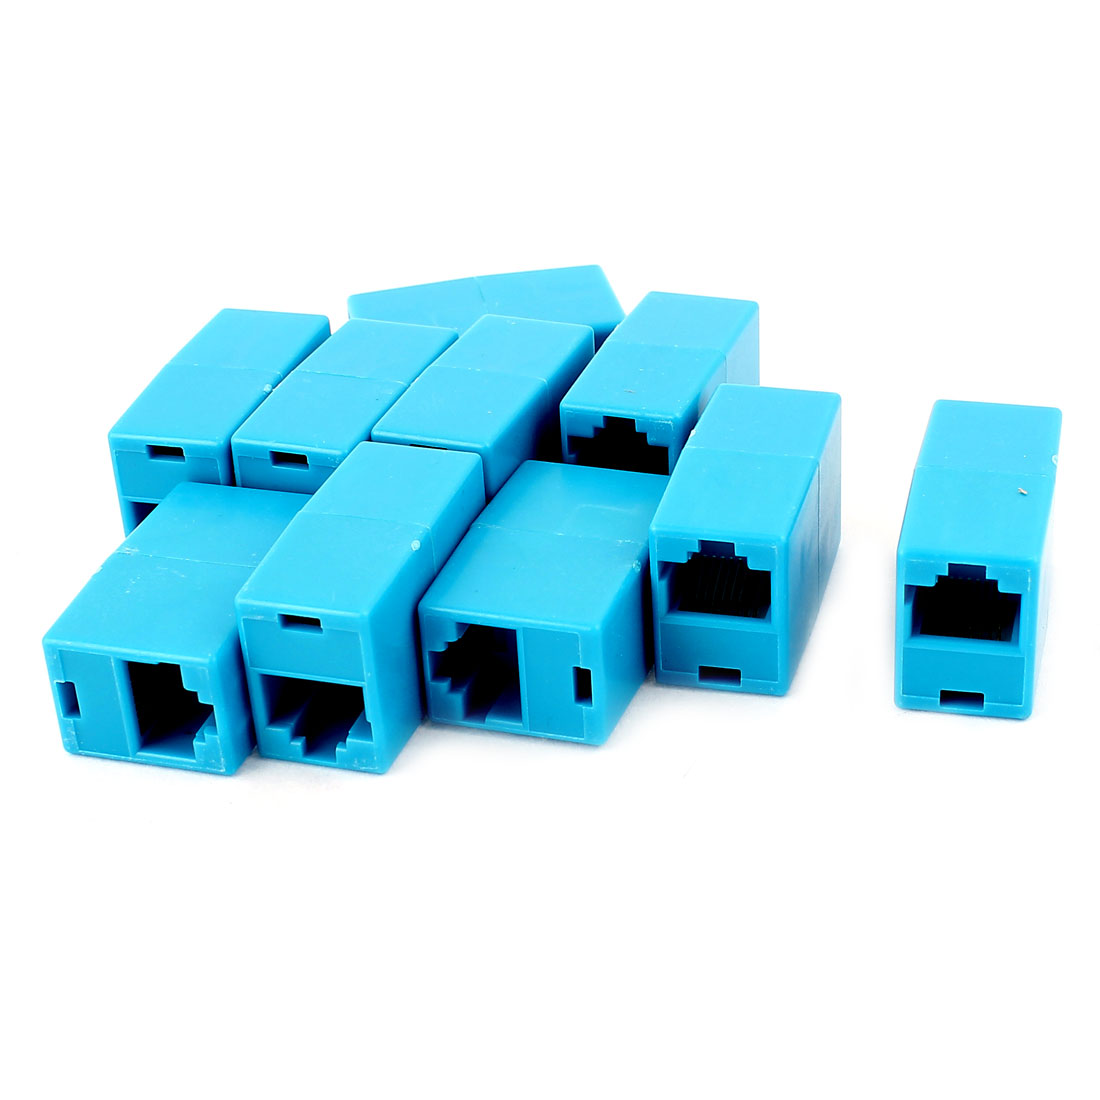 10Pcs RJ45 8P8C F/F Network Cable Connector Adapter Extender Coupler Blue